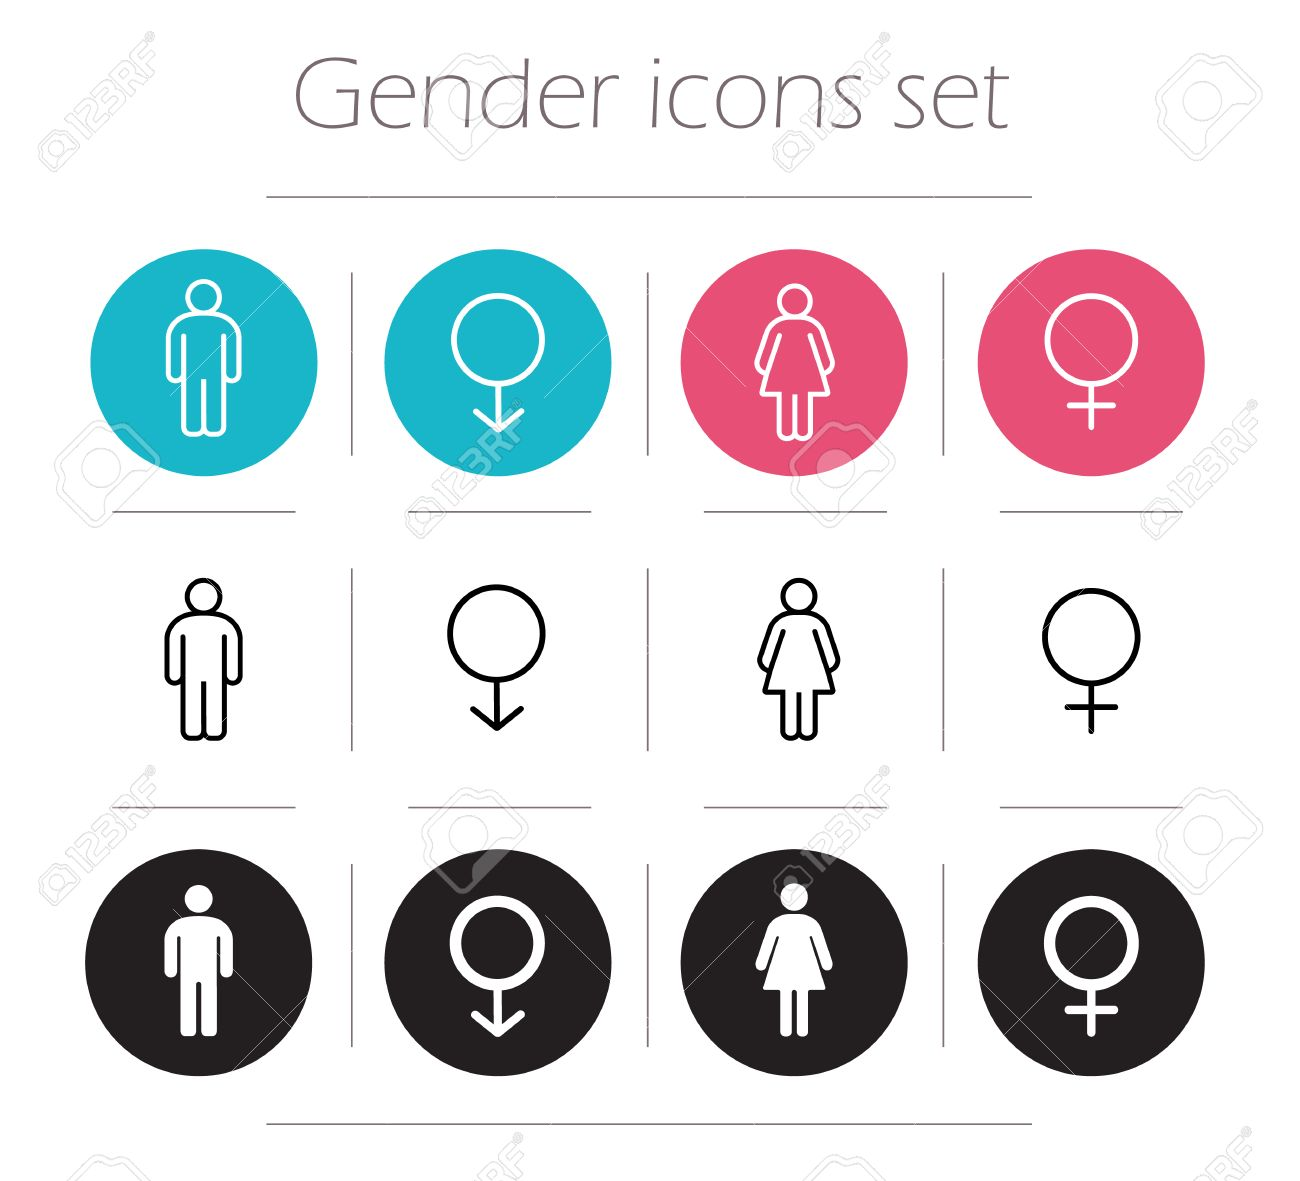 Gender icons set  Lady and gentleman restroom sign  Wc man and woman body  shape. Gender Icons Set  Lady And Gentleman Restroom Sign  Wc Man And